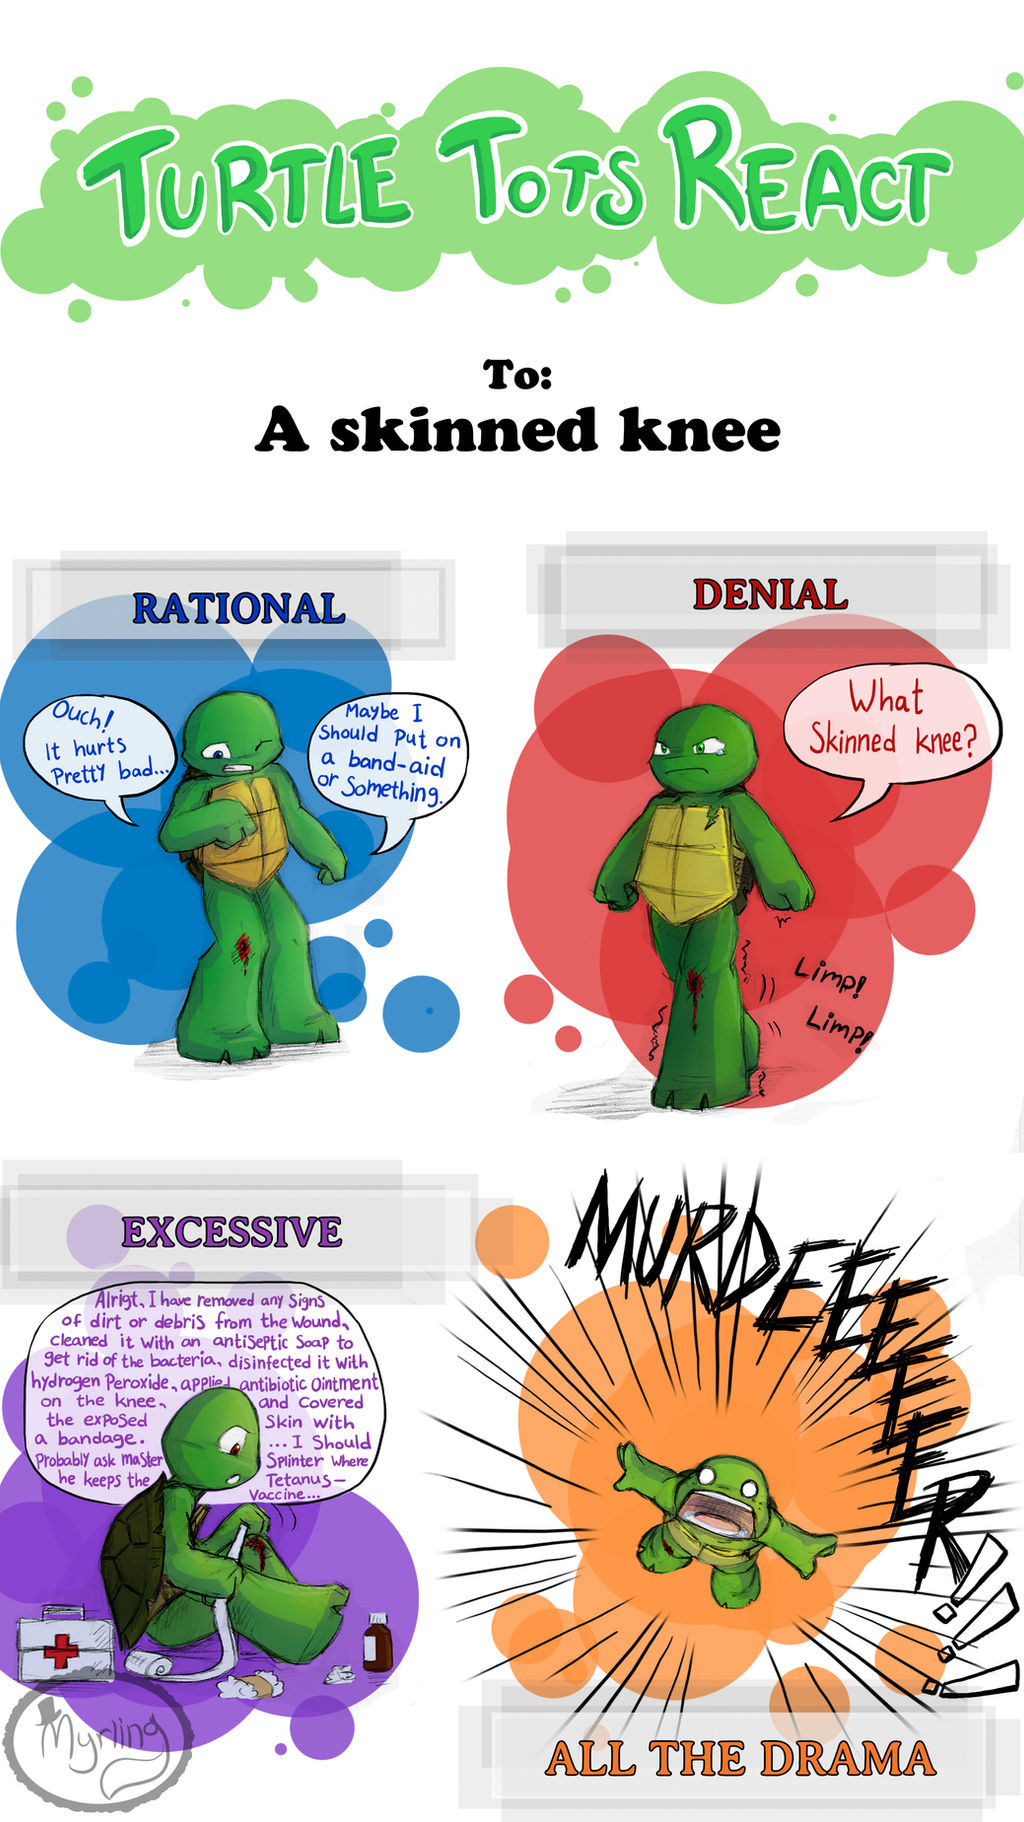 Turtle Tots React - Skinned knee